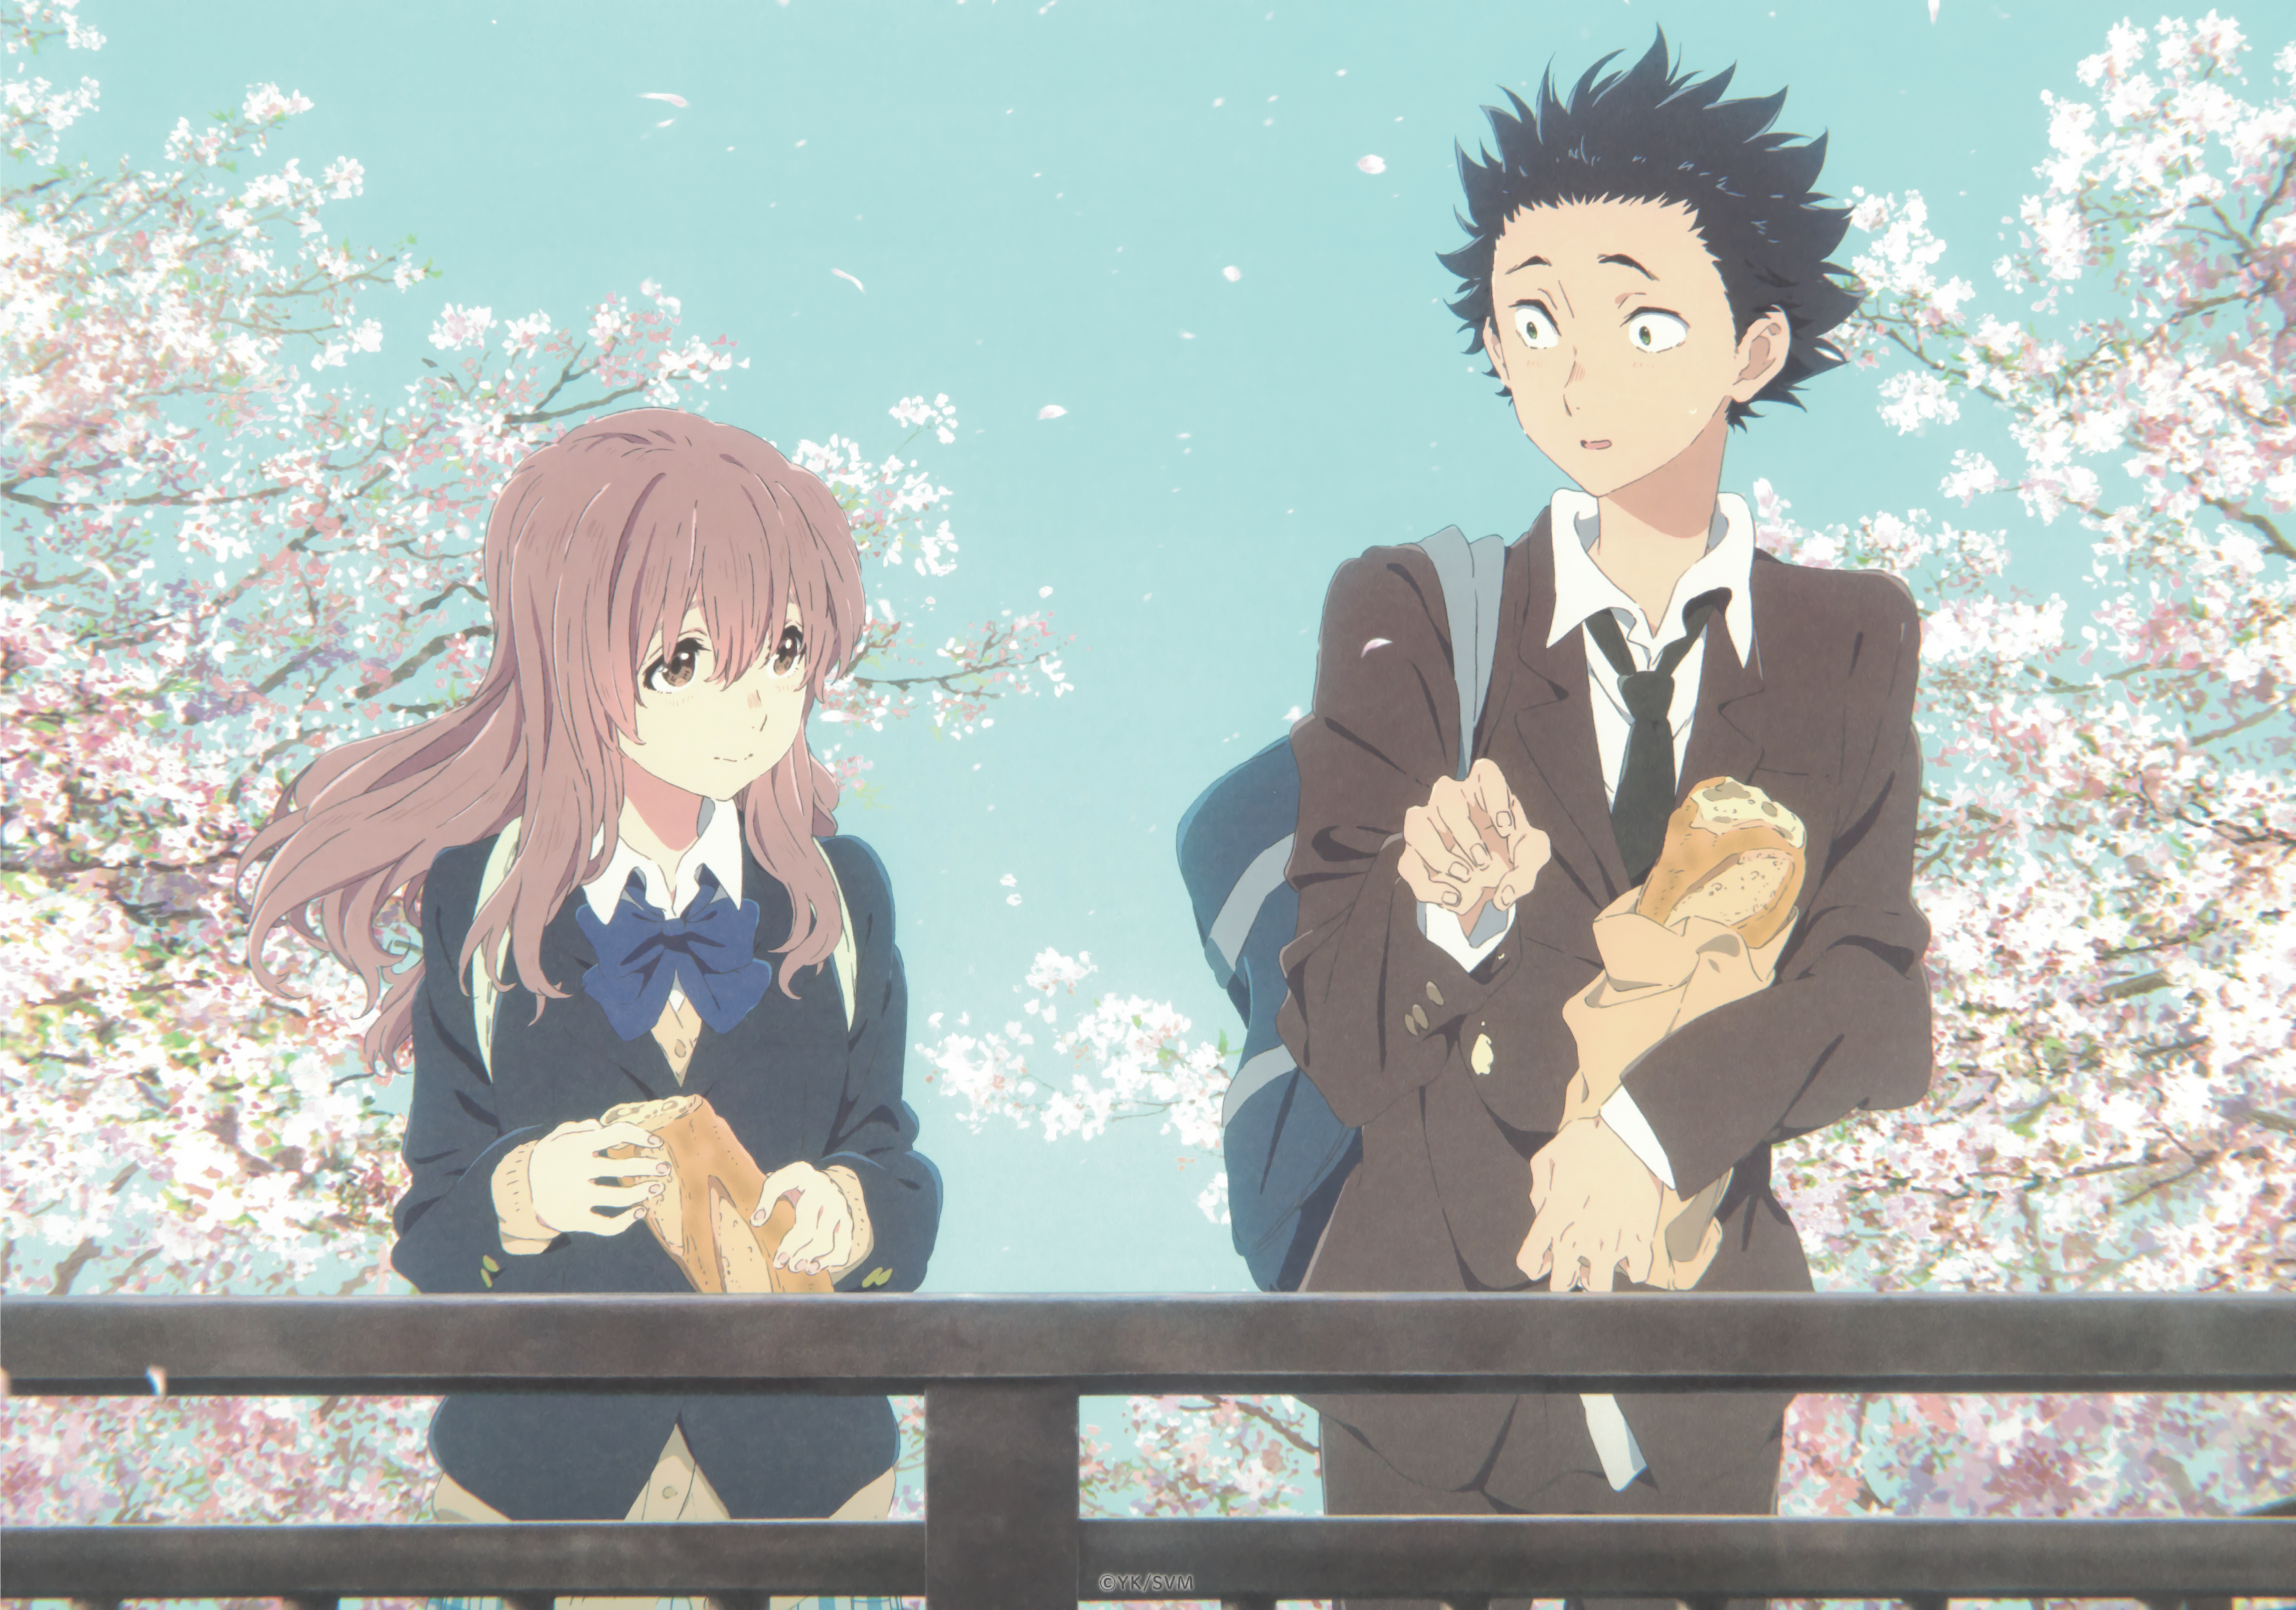 Koe no Katachi (picture from zerochan.net)